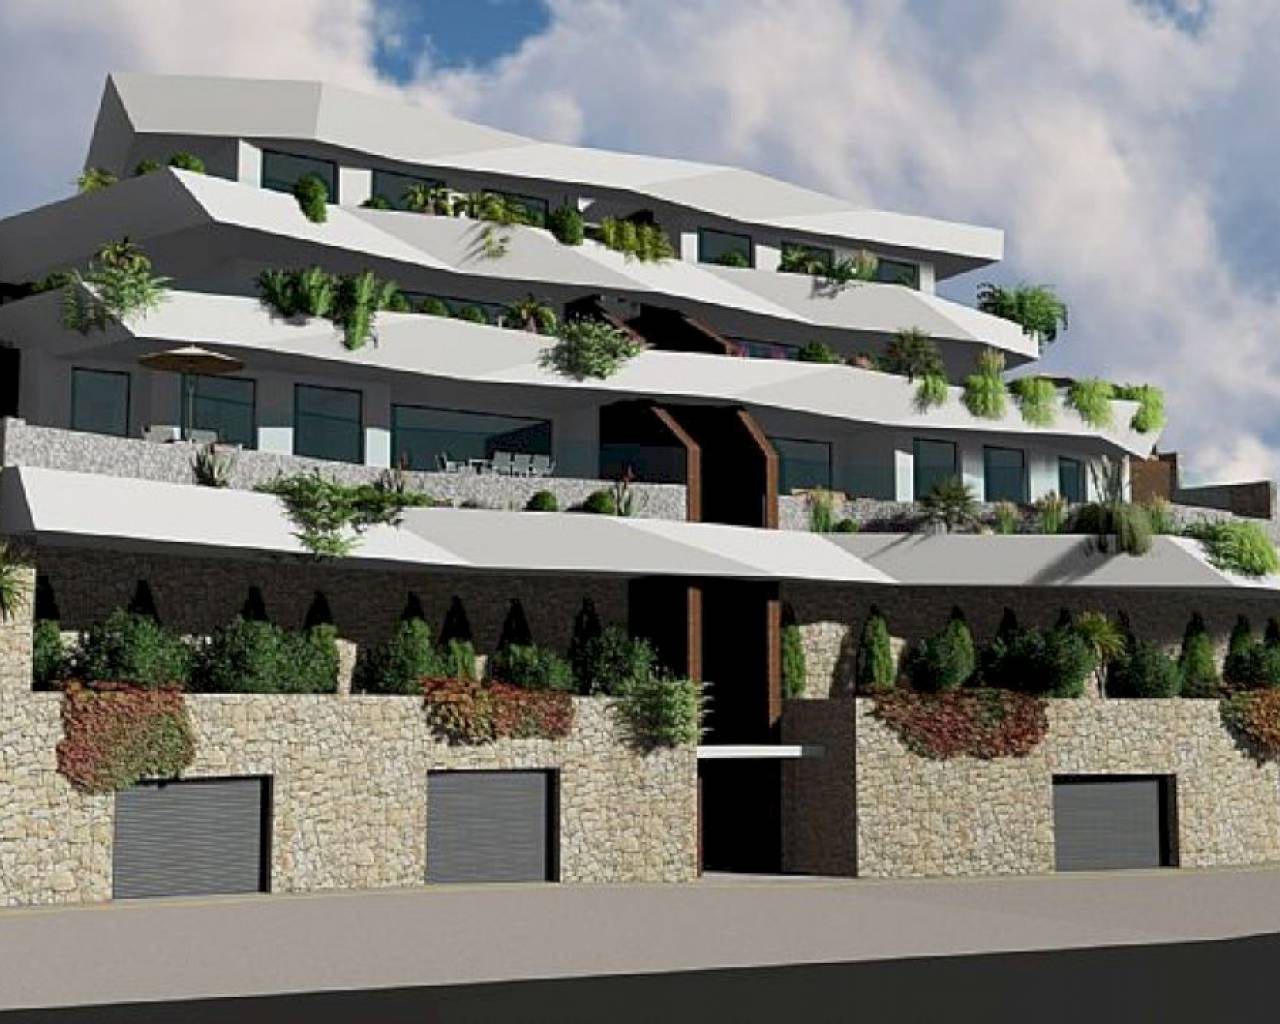 Eben - New Build - Benidorm - Poniente